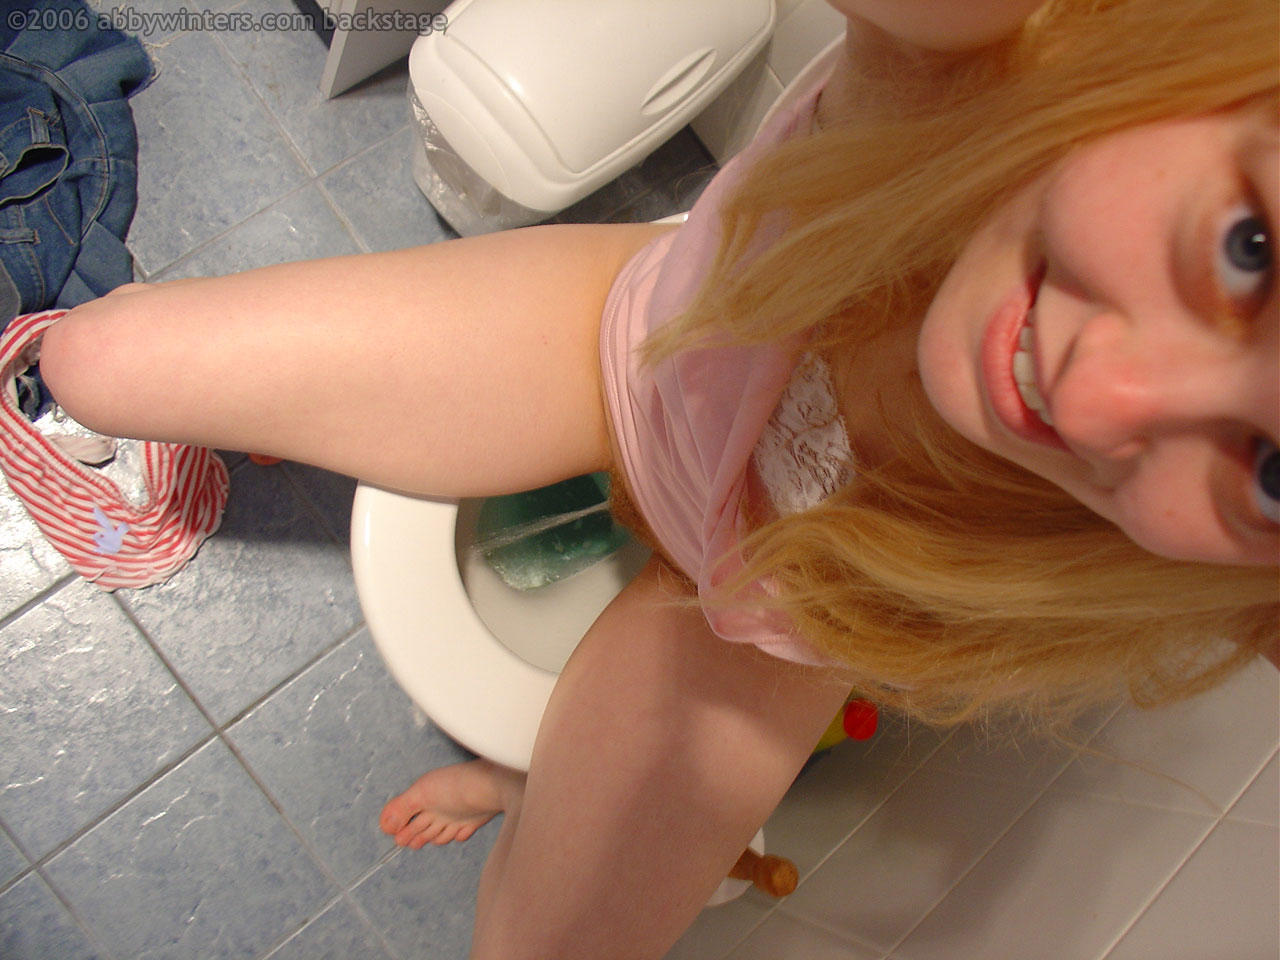 blond babes eve smile and wiska in foot fetish hardcore